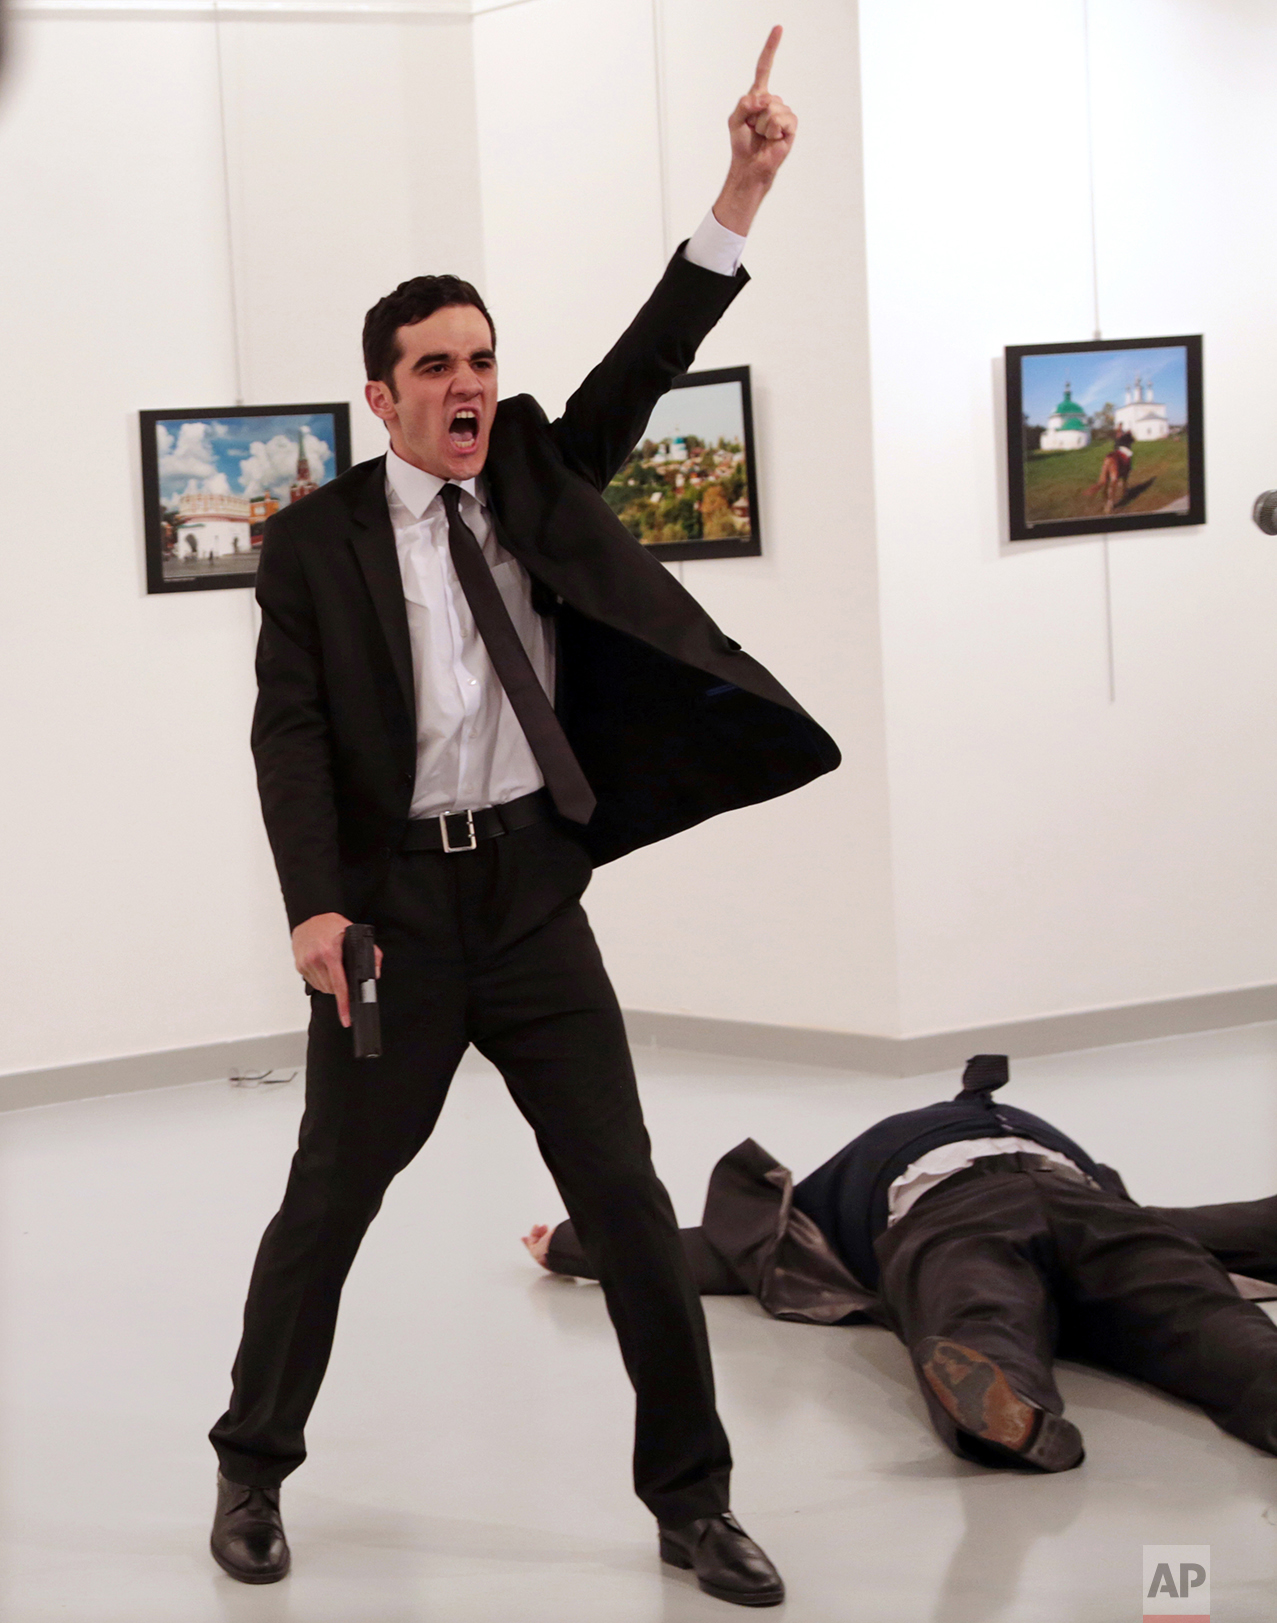 """Mevlut Mert Altintas shouts after shooting Andrei Karlov, right, the Russian ambassador to Turkey, at an art gallery in Ankara, Turkey, Monday, Dec. 19, 2016. Associated Press photographer Burhan Ozbilici won the 2017 World Press Photo competition Monday Feb. 13, 2017 for the image. It was part of a series titled """"An Assassination in Turkey"""" which also won the Spot News - Stories category, captured in the moments before and after Altintas, an off-duty policeman, drew a handgun and shot Karlov at a photo exhibition.(AP Photo/Burhan Ozbilici)"""